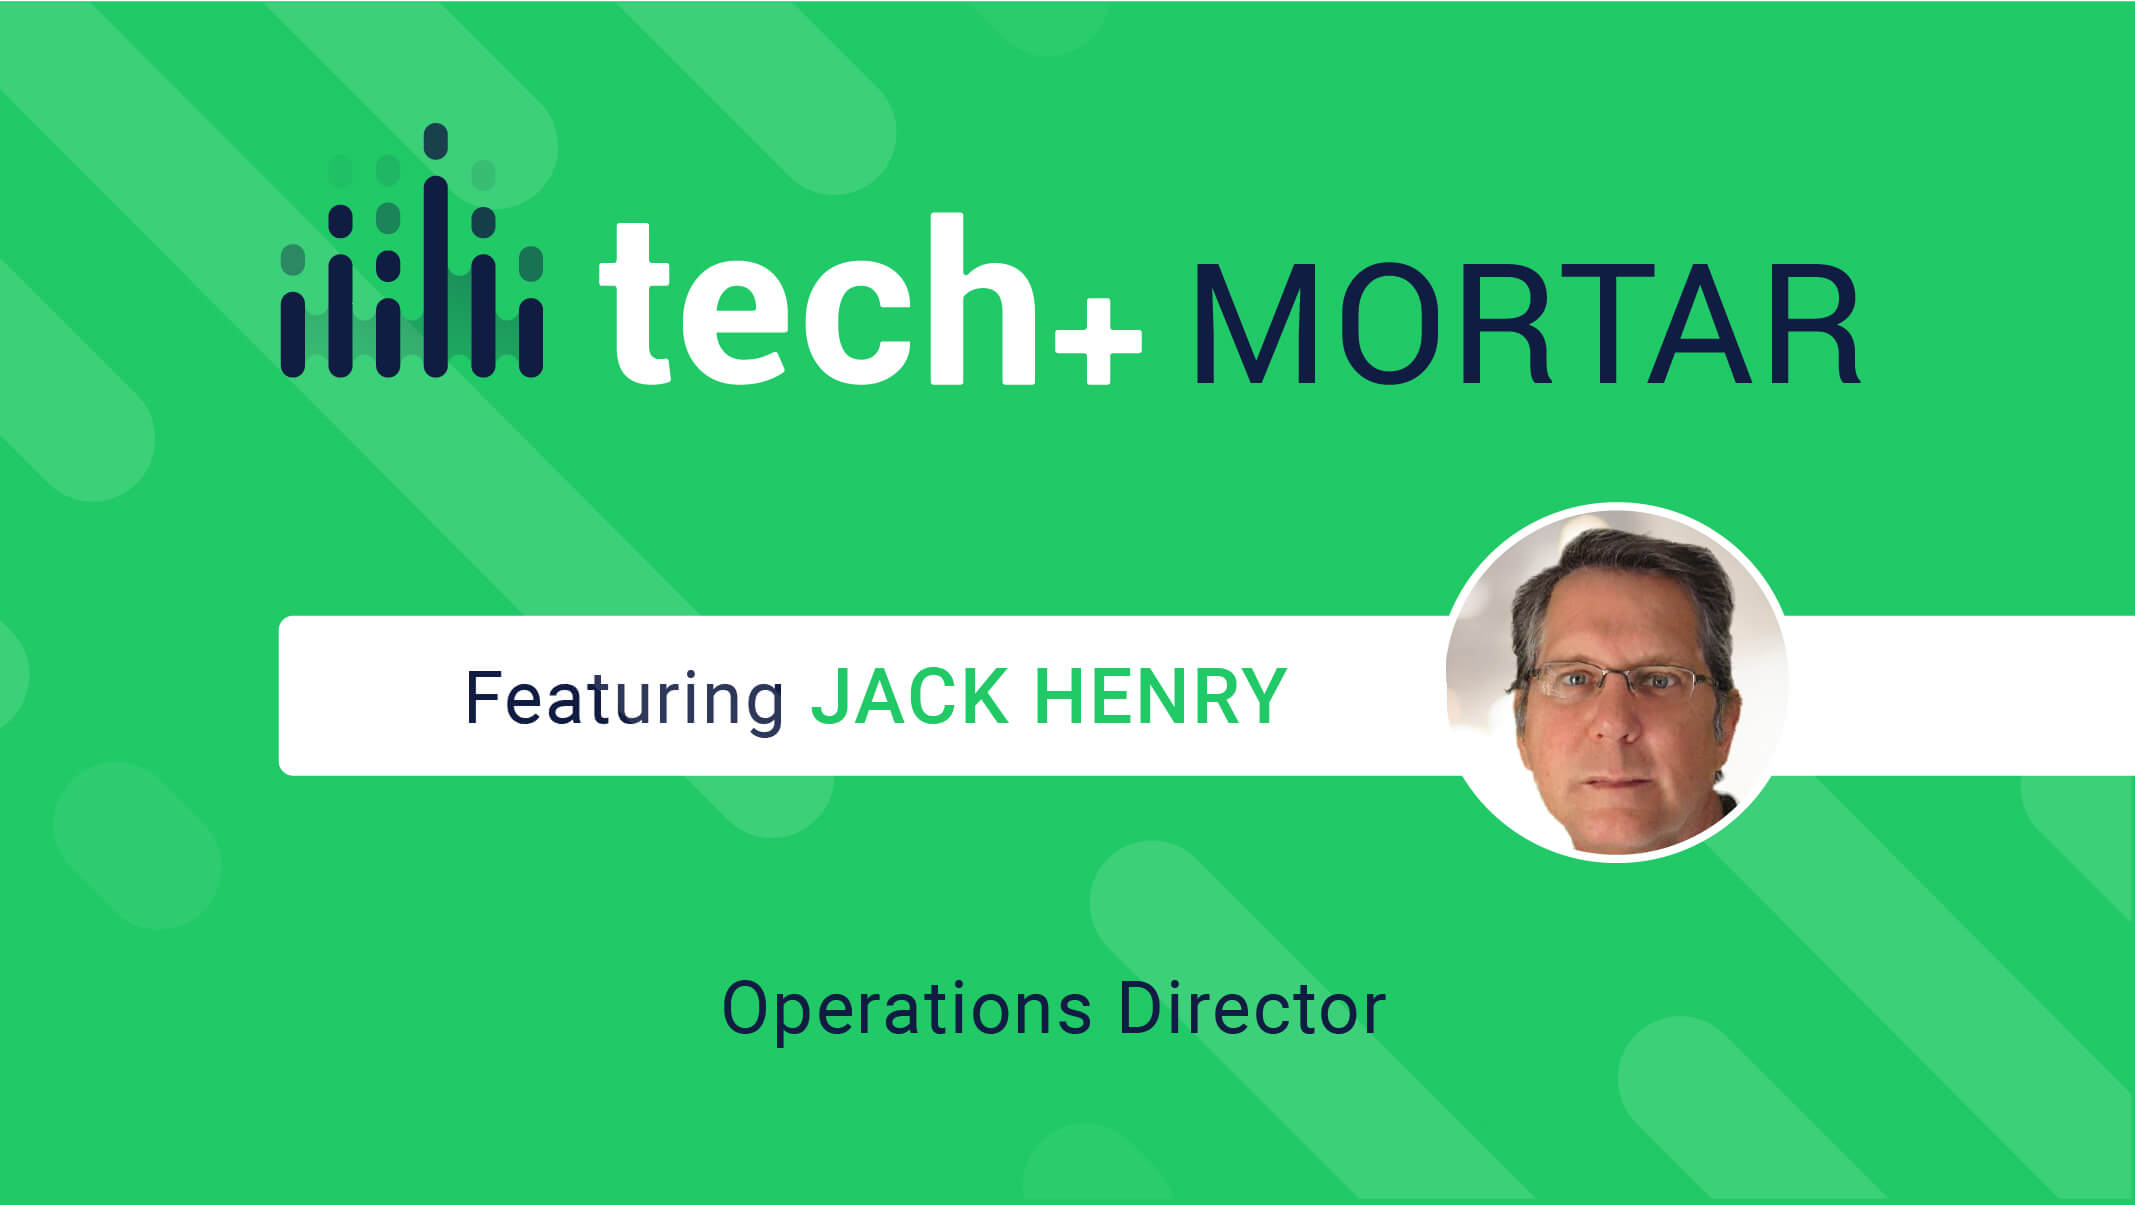 Jack Henry, Operations Director